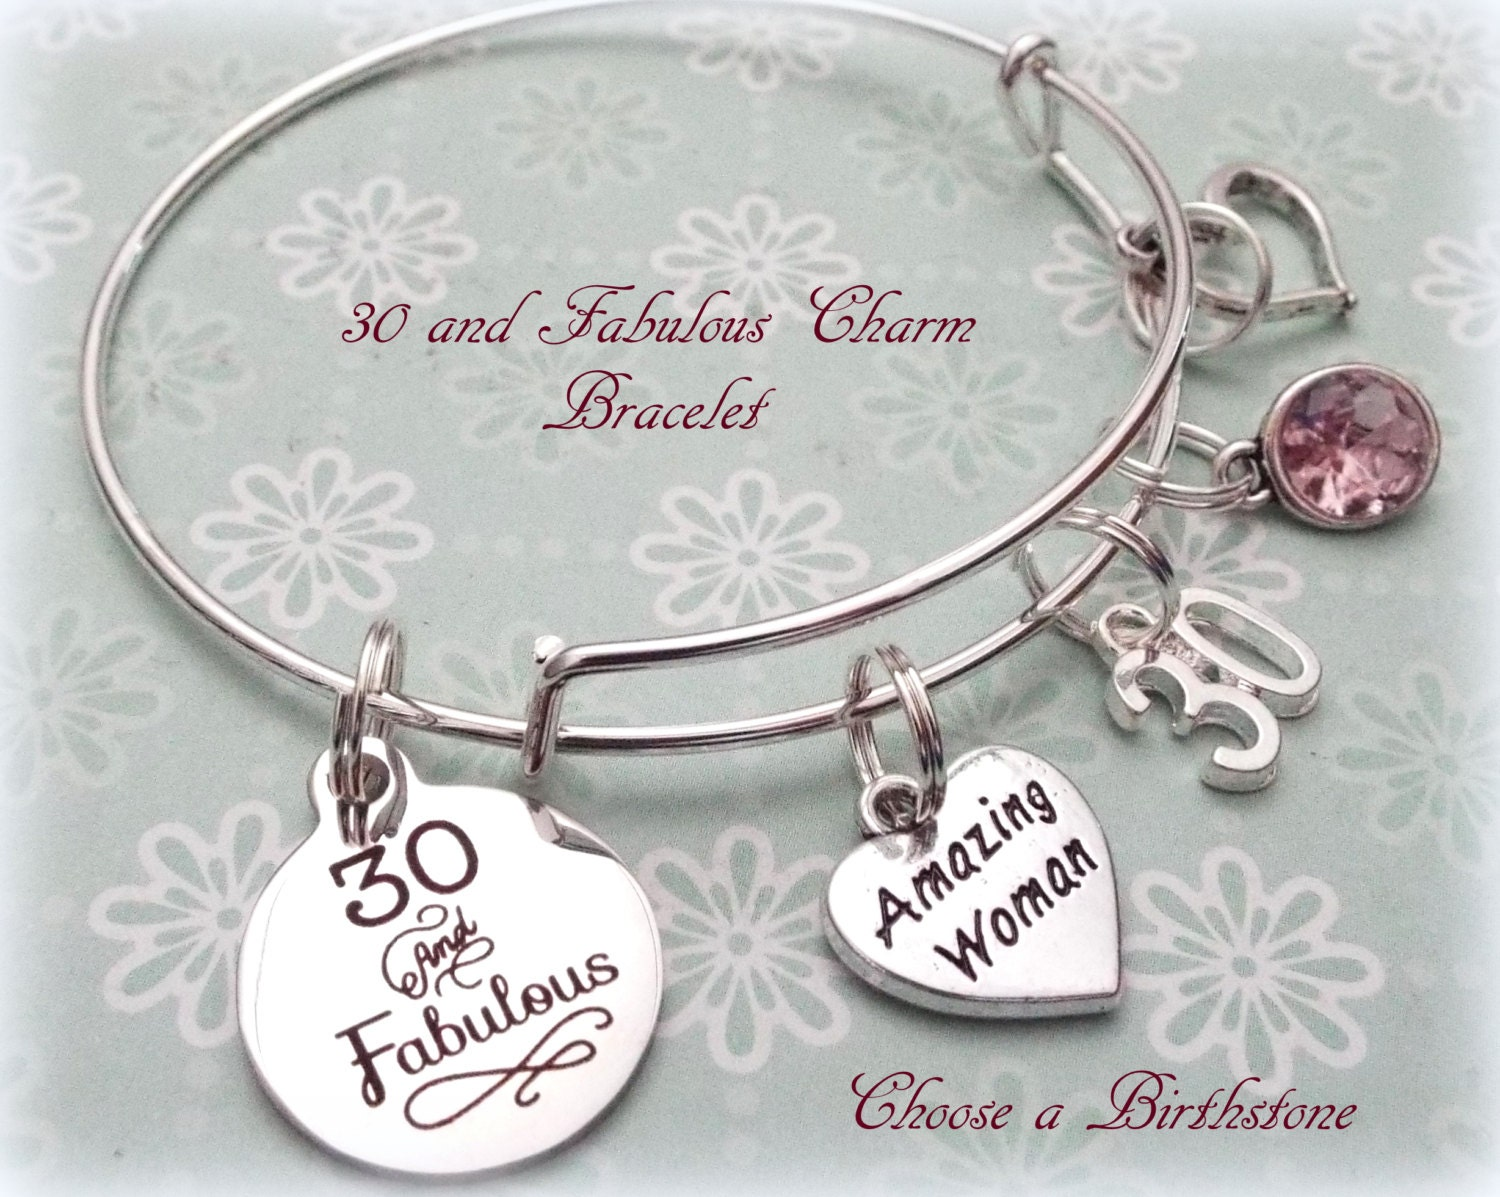 30th birthday gift 30 and fabulous charm bracelet birthday gift 30th birthday gift 30 and fabulous charm bracelet birthday gift for girlfriend best friend gift friend birthday gift gift for friend negle Images